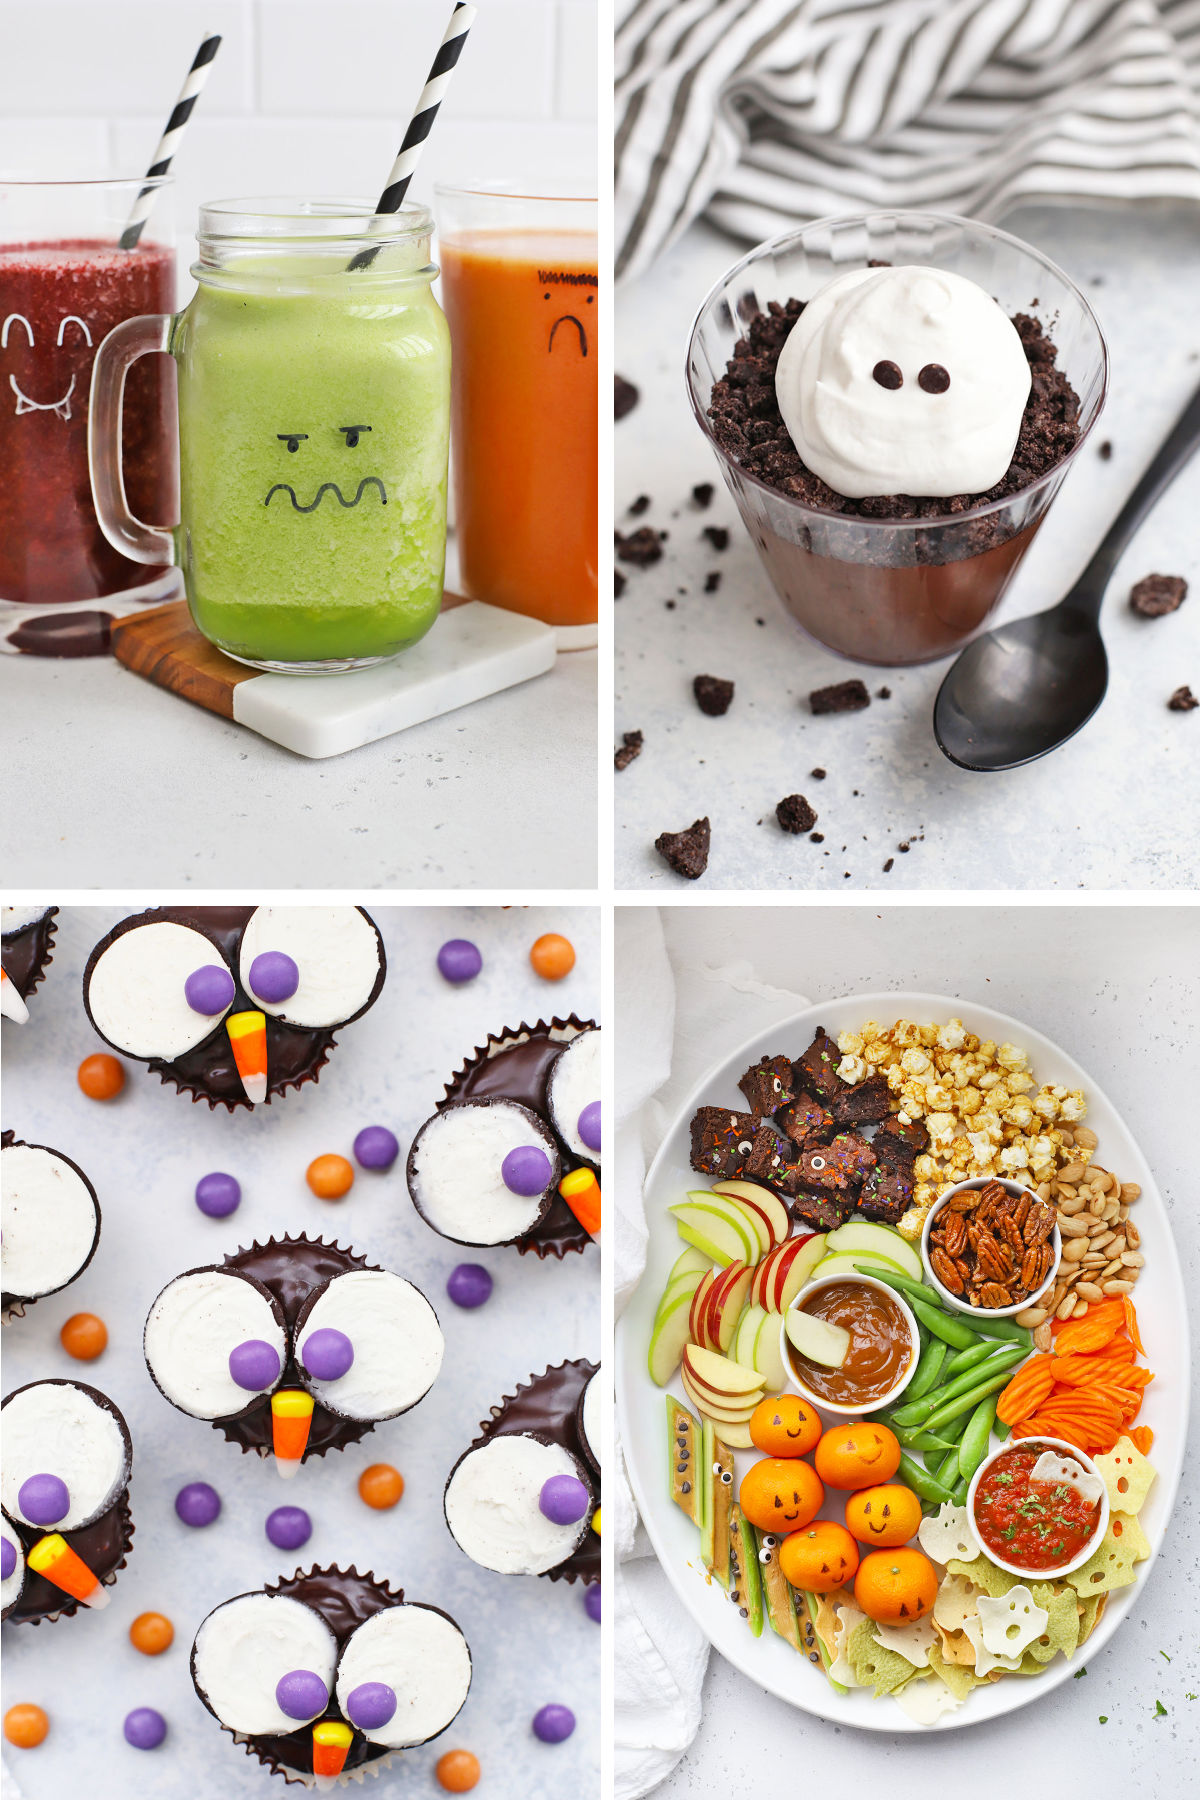 Cute, Easy Halloween Food Ideas - Make Halloween special with these easy Halloween food ideas! There are ideas for every meal of the day + dessert! (Gluten Free, Dairy Free & Vegan Options!) // halloween food // kid friendly halloween food // halloween party food // cute halloween food // owl cupcakes // monster green smoothies // ghost tortilla chips // ghost pudding cups // dirt pudding // jack o'lantern stuffed peppers #glutenfree #dairyfree #vegan